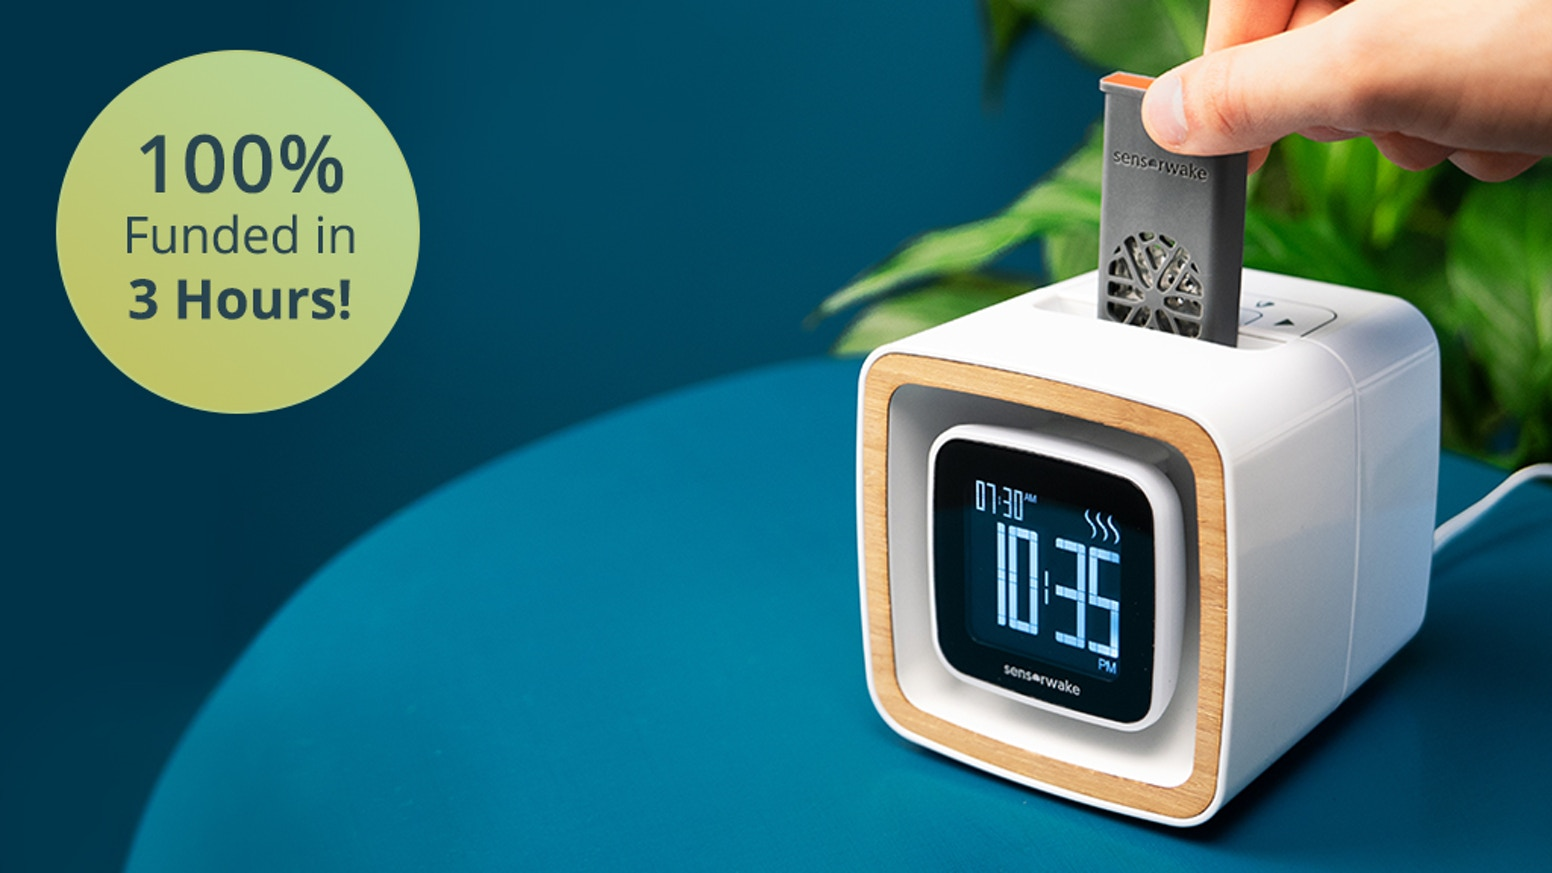 Next-Gen Scent-Based Alarm Clock Activates Three Senses: Smell, Sight & Sound. Named Google's Top 15 Inventions to Change the World